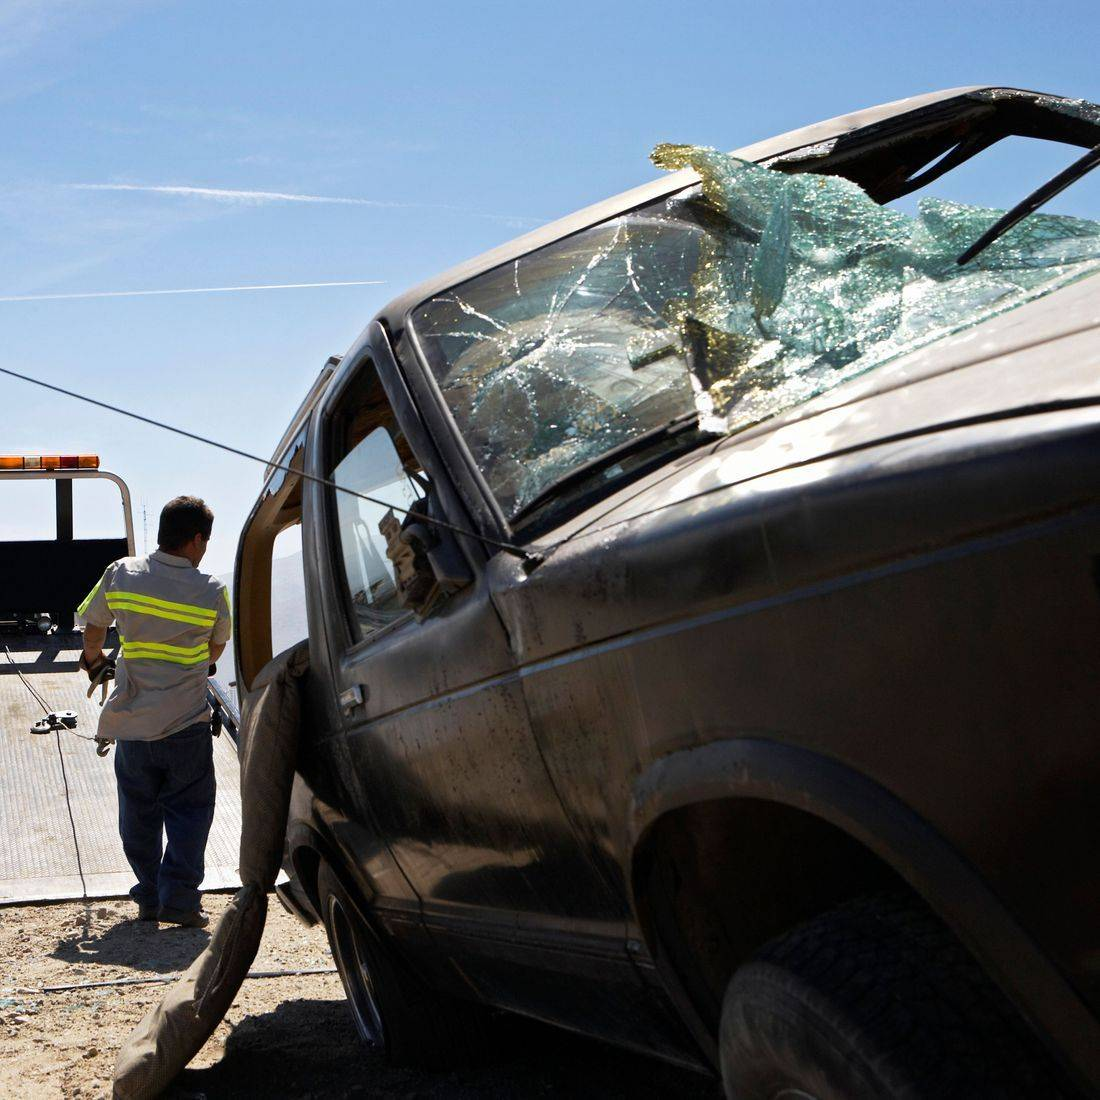 ACCEPTED WORKERS' COMP AND AUTO ACCIDENT INSURANCE CLAIMS